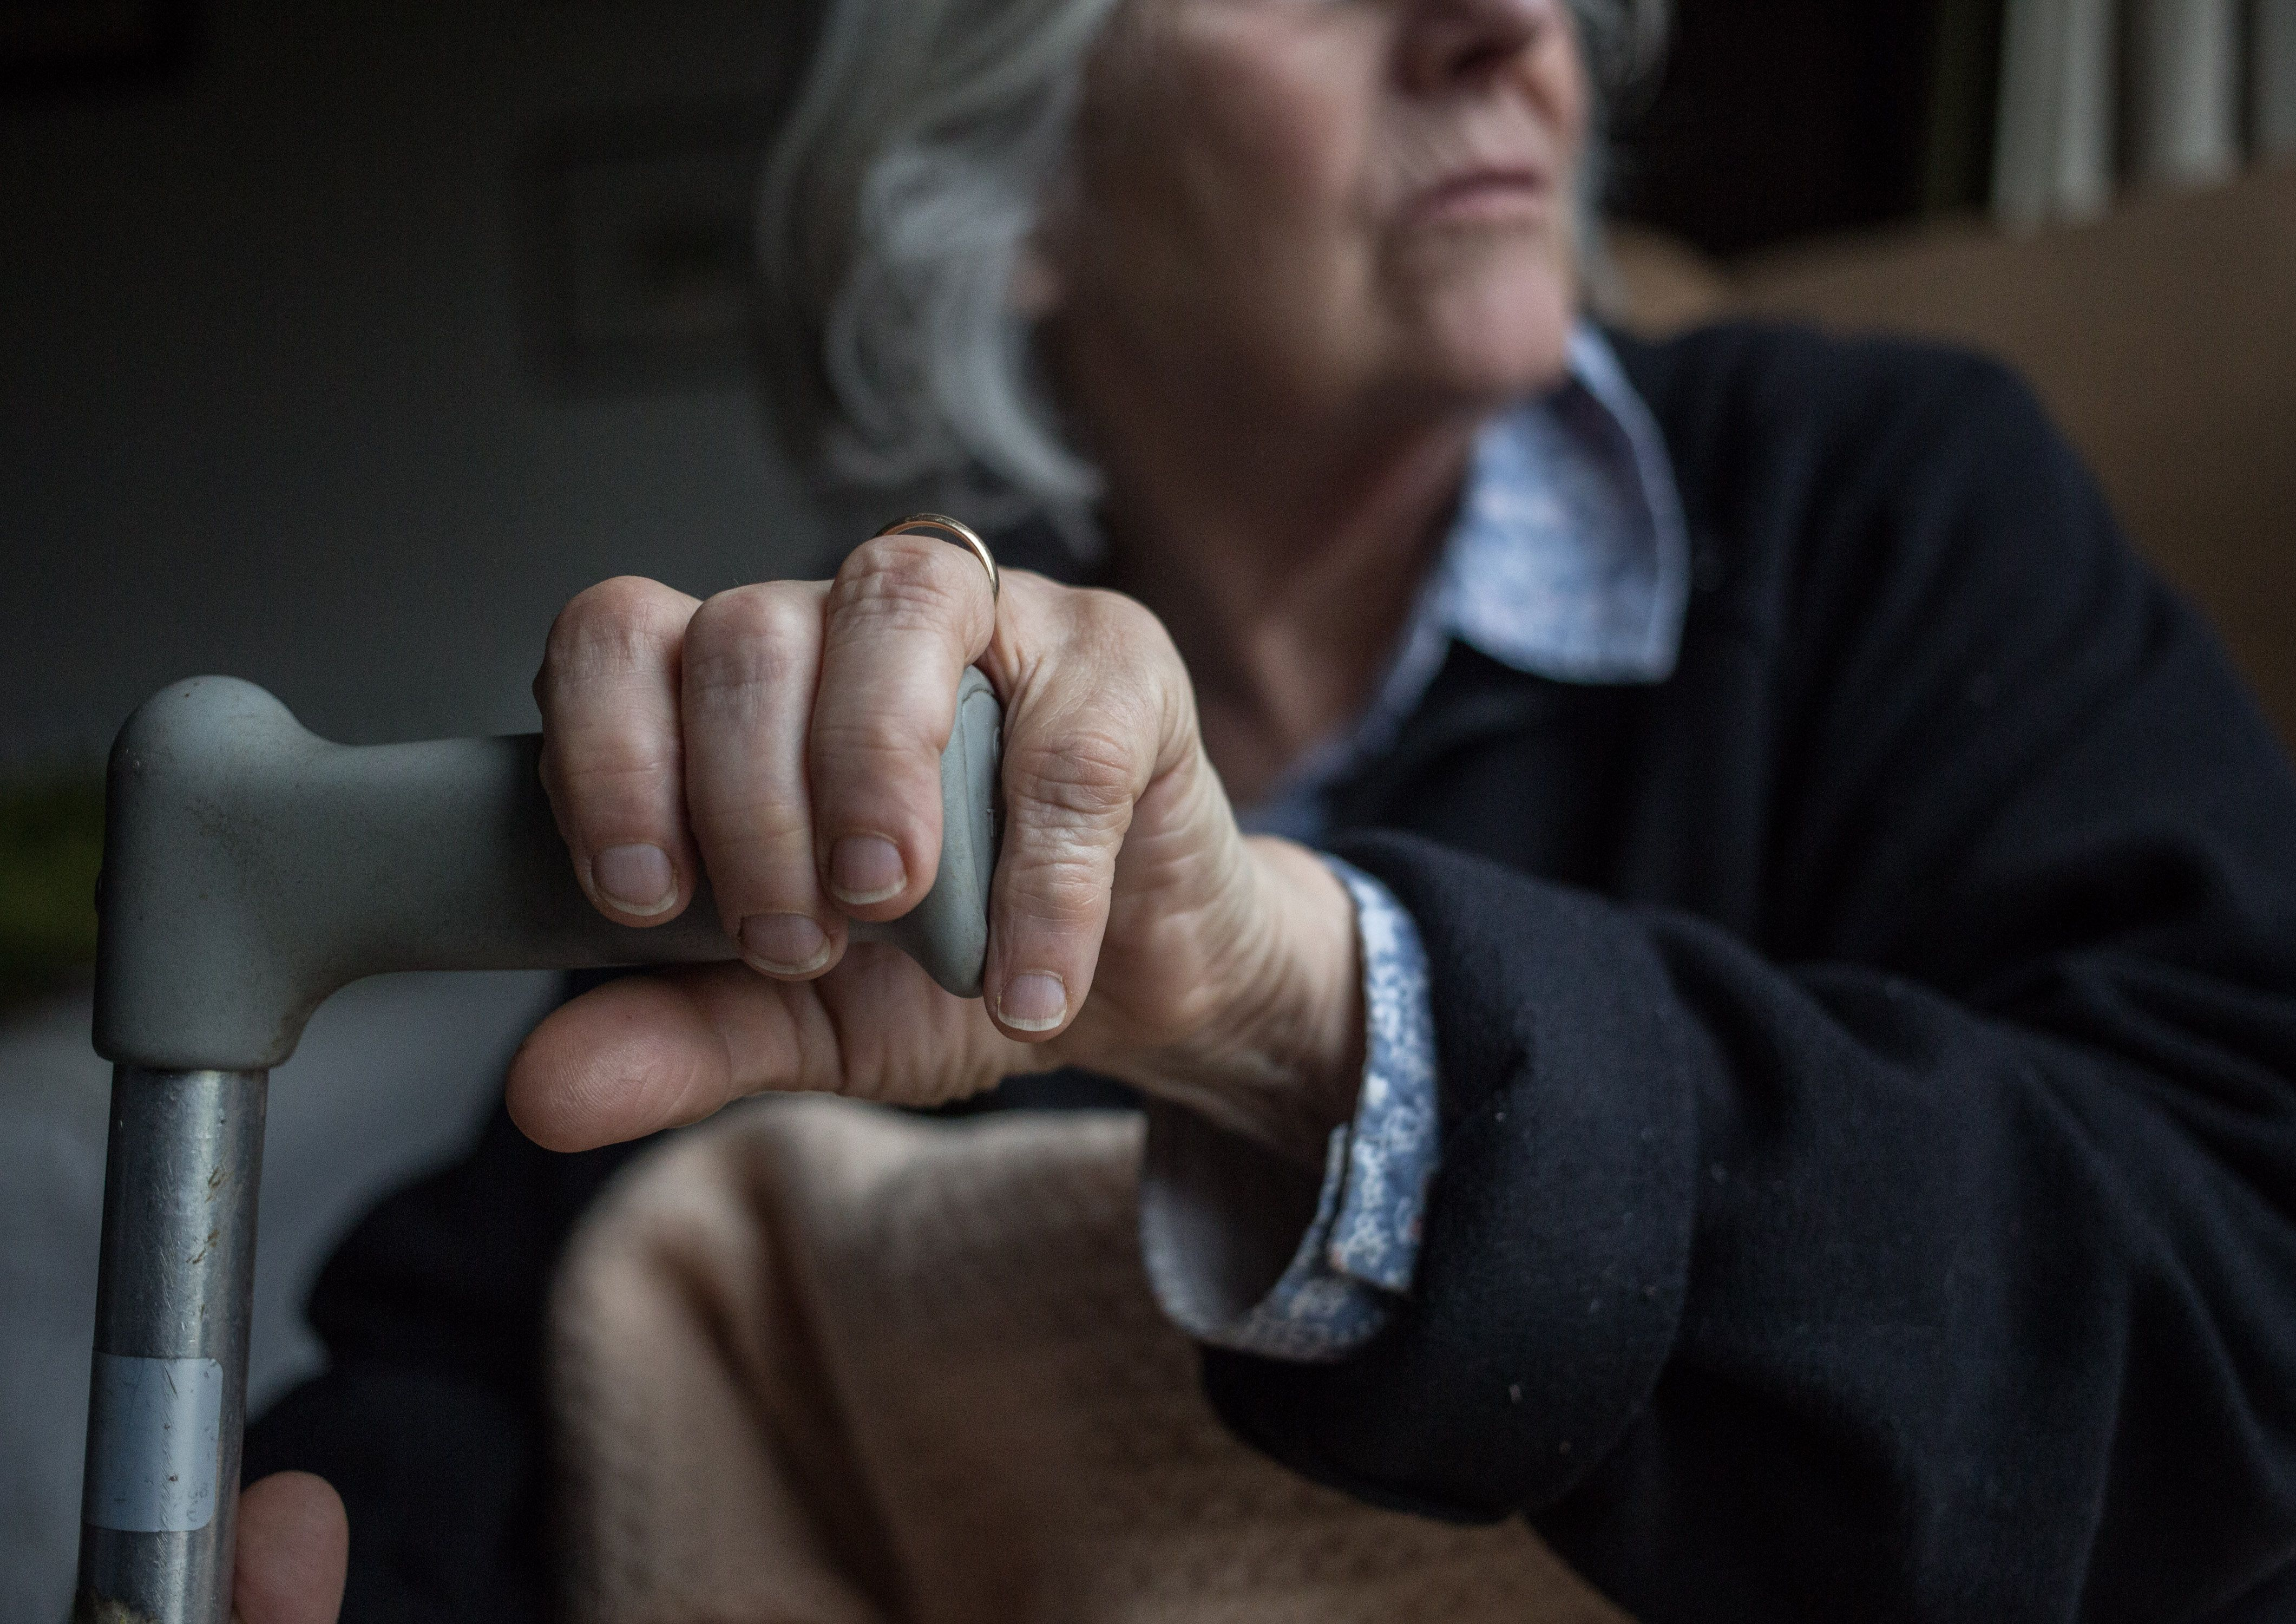 'Just because I'm old, it doesn't mean I vote Tory or support Brexit'